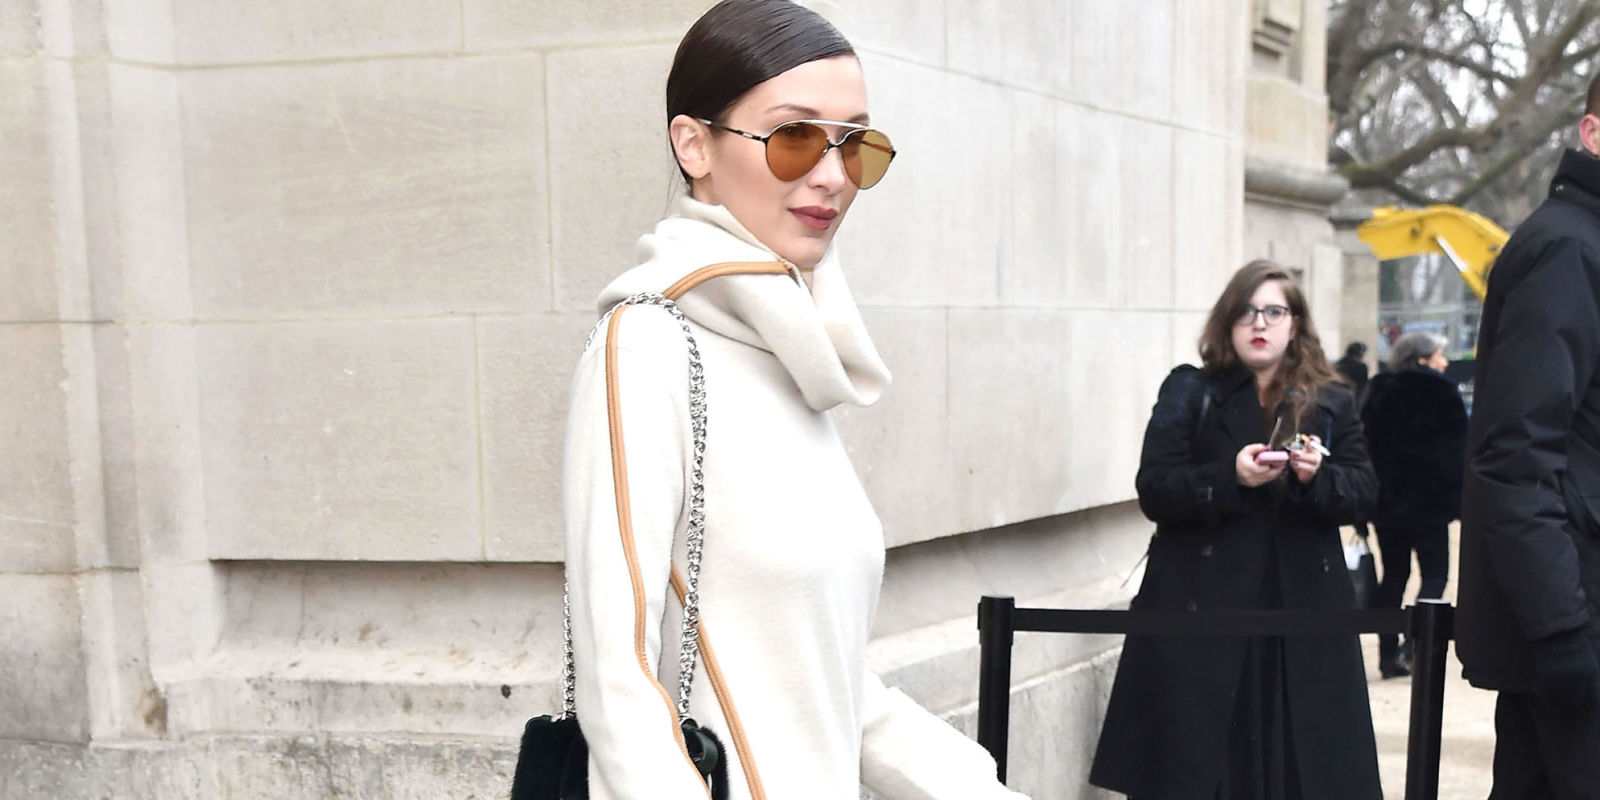 picture TheLIST: Best Dressed: Haute Couture Edition